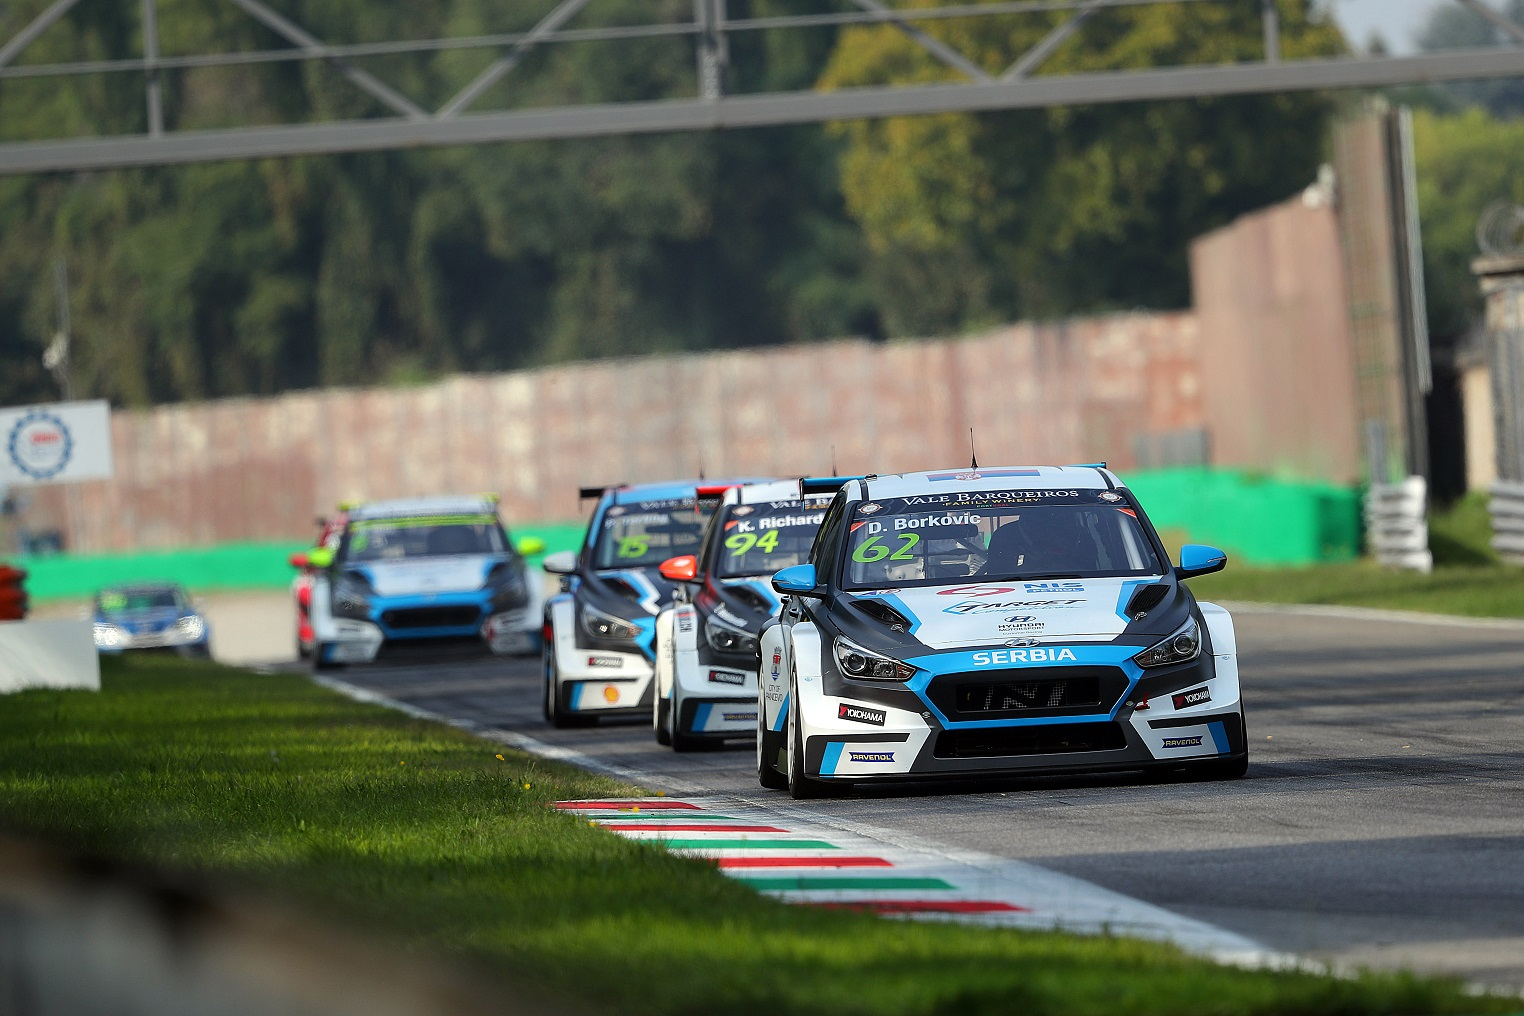 TCR Europe Monza, Italia 21 - 23 September 2018